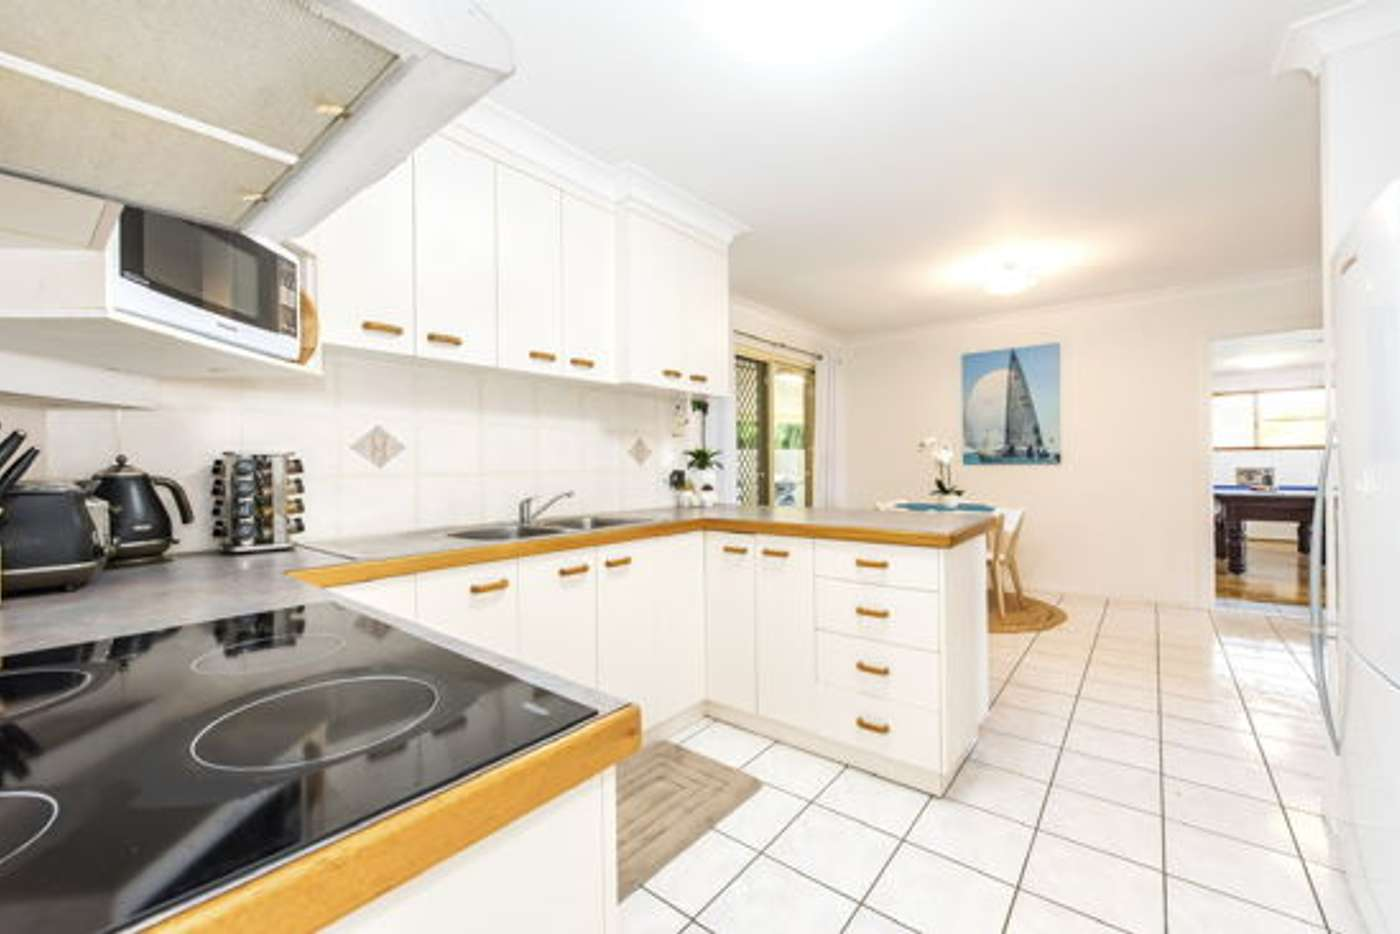 Sixth view of Homely house listing, 29 Caledonian Drive, Beaconsfield QLD 4740